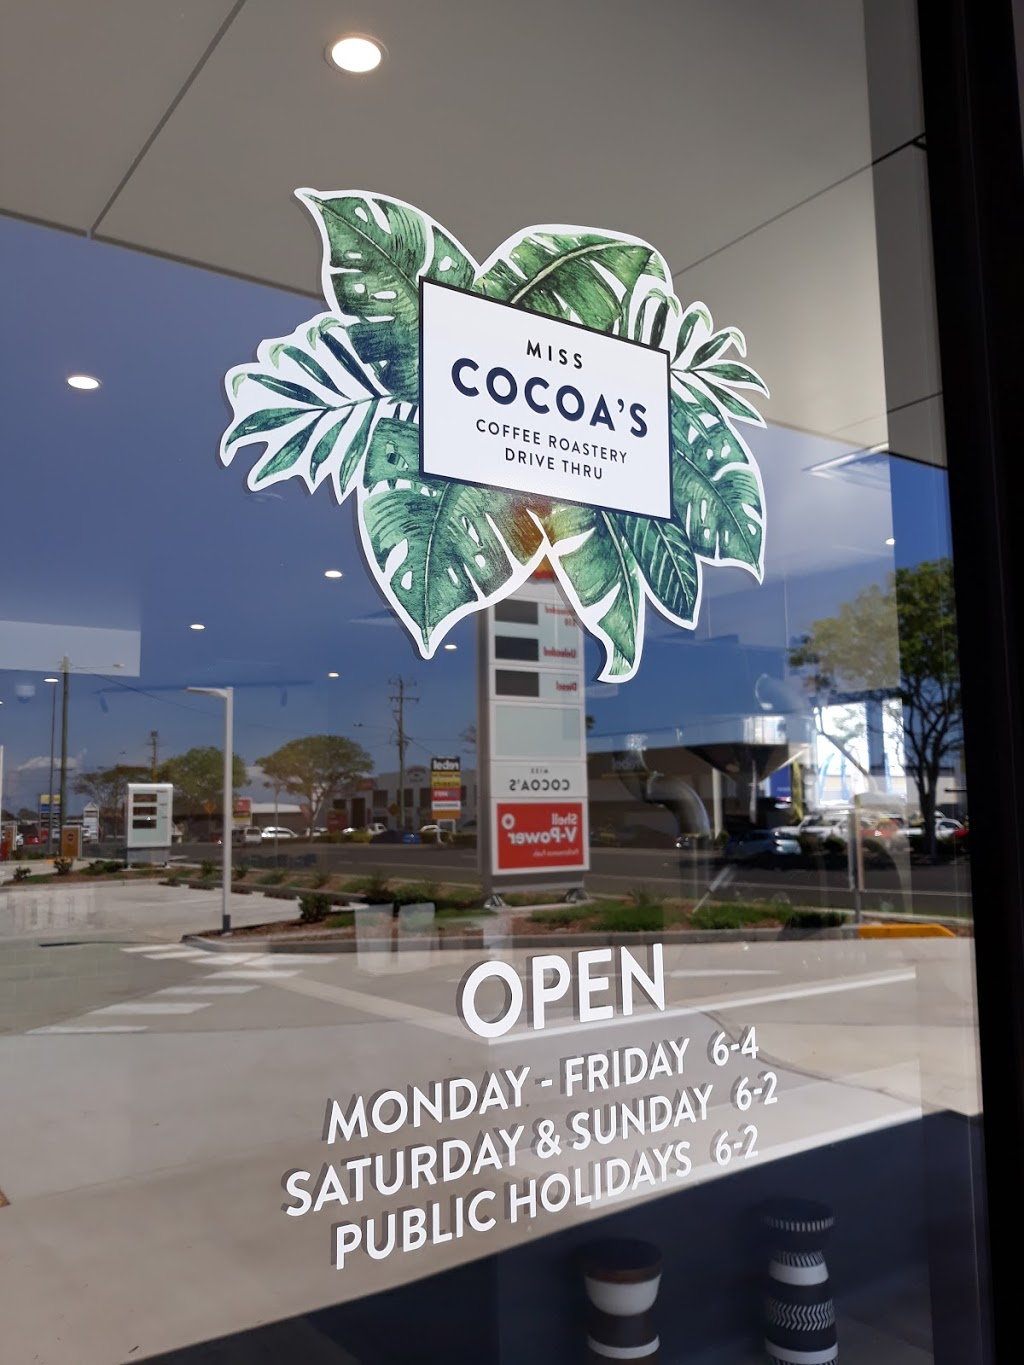 Miss Cocoas Coffee Roastery Drive Thru | cafe | Boat Harbour Drive Park, 93-101 Boat Harbour Dr, Urraween QLD 4655, Australia